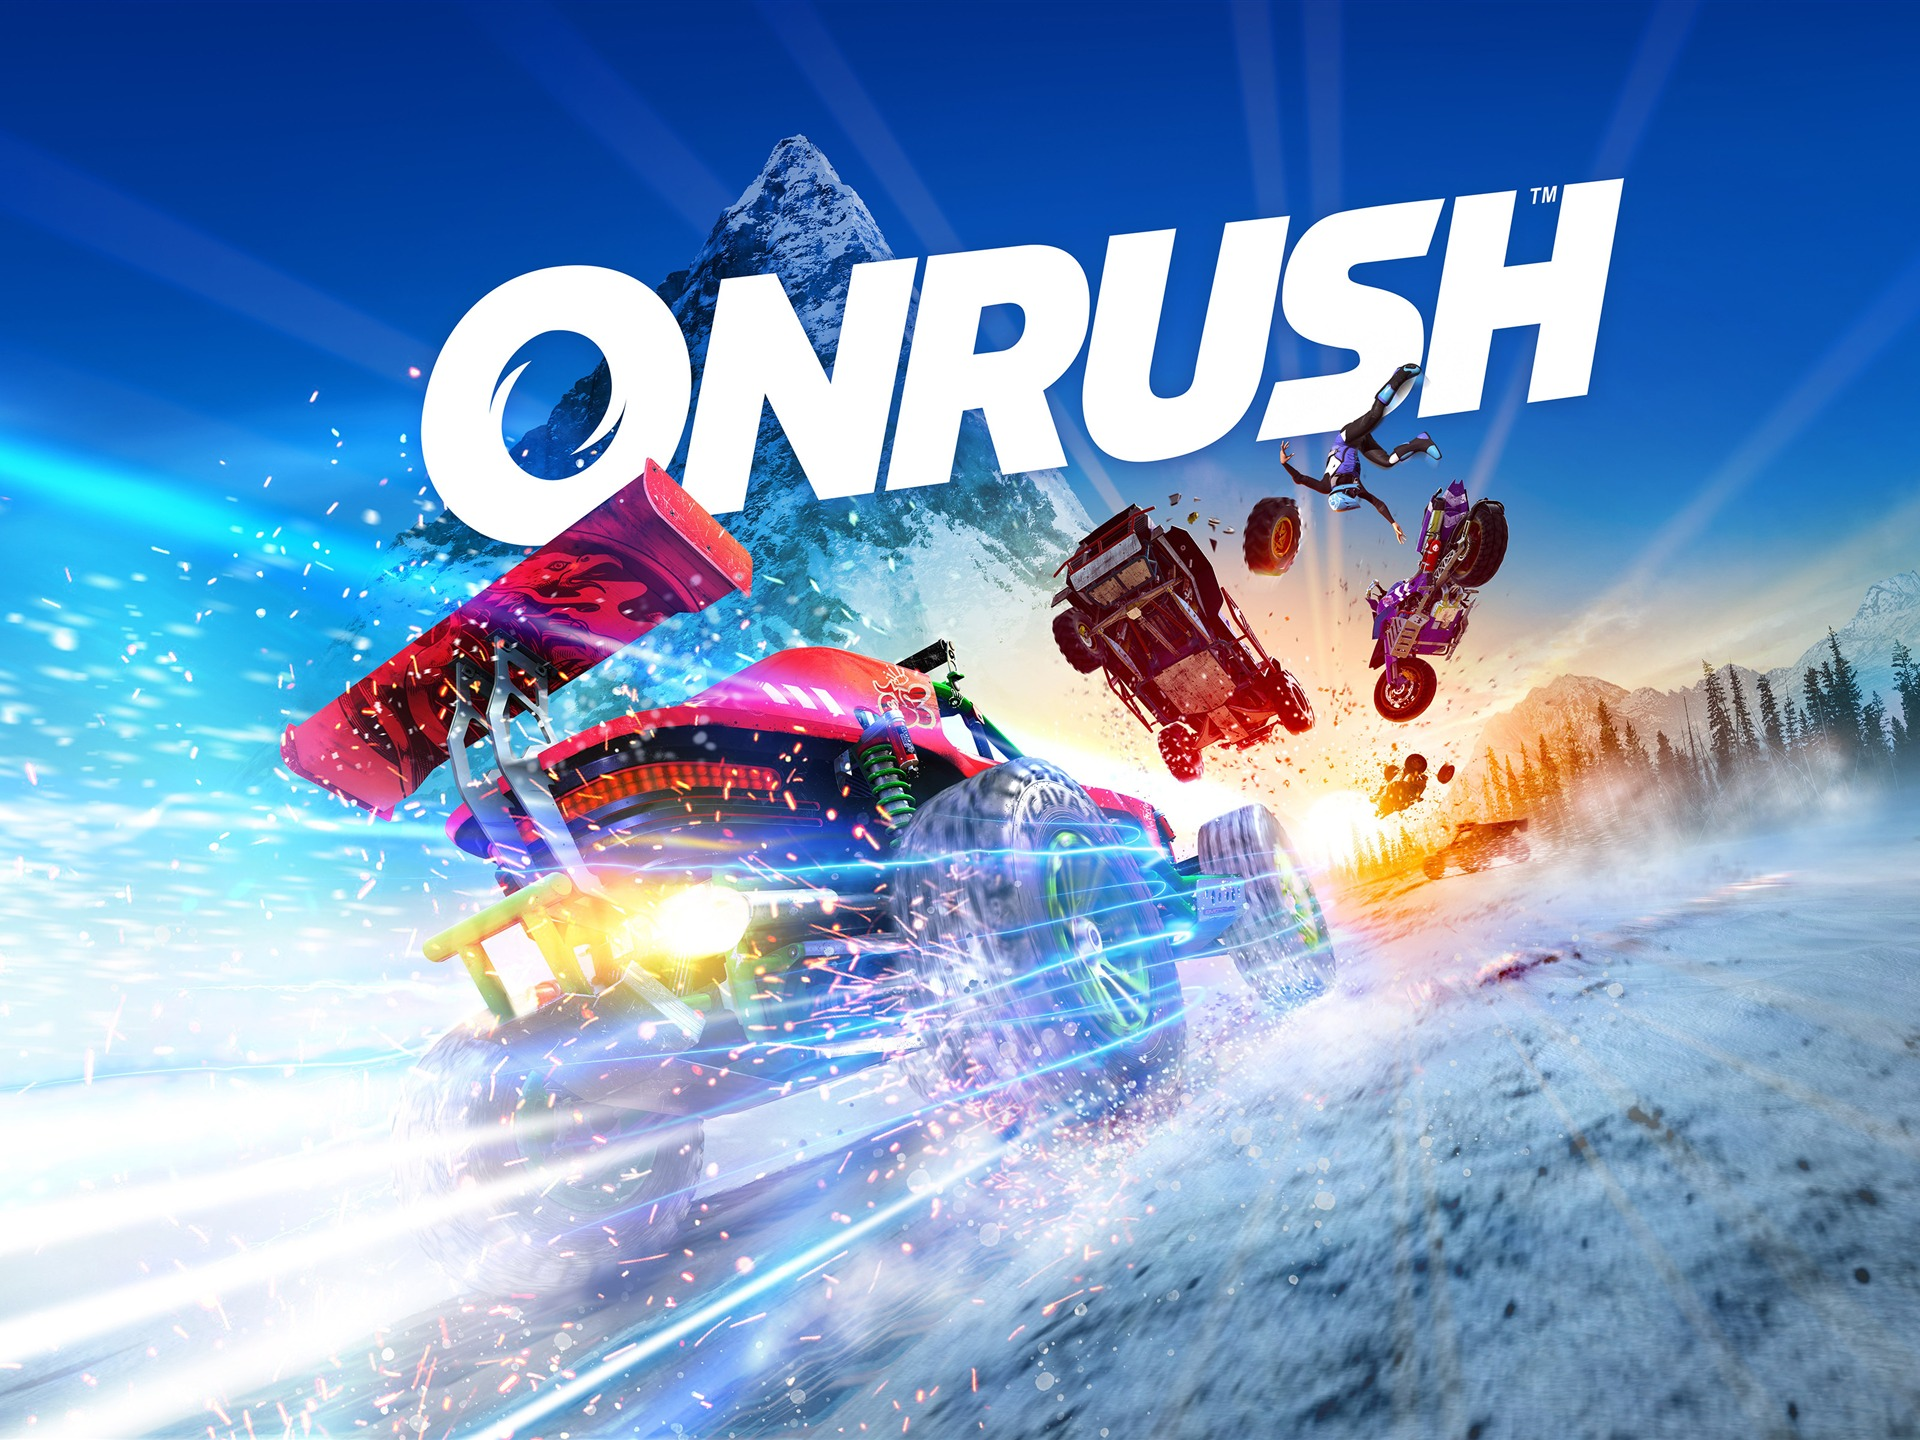 Onrush 2018 Video Game 4K HD Poster - 1920x1440 wallpaper download